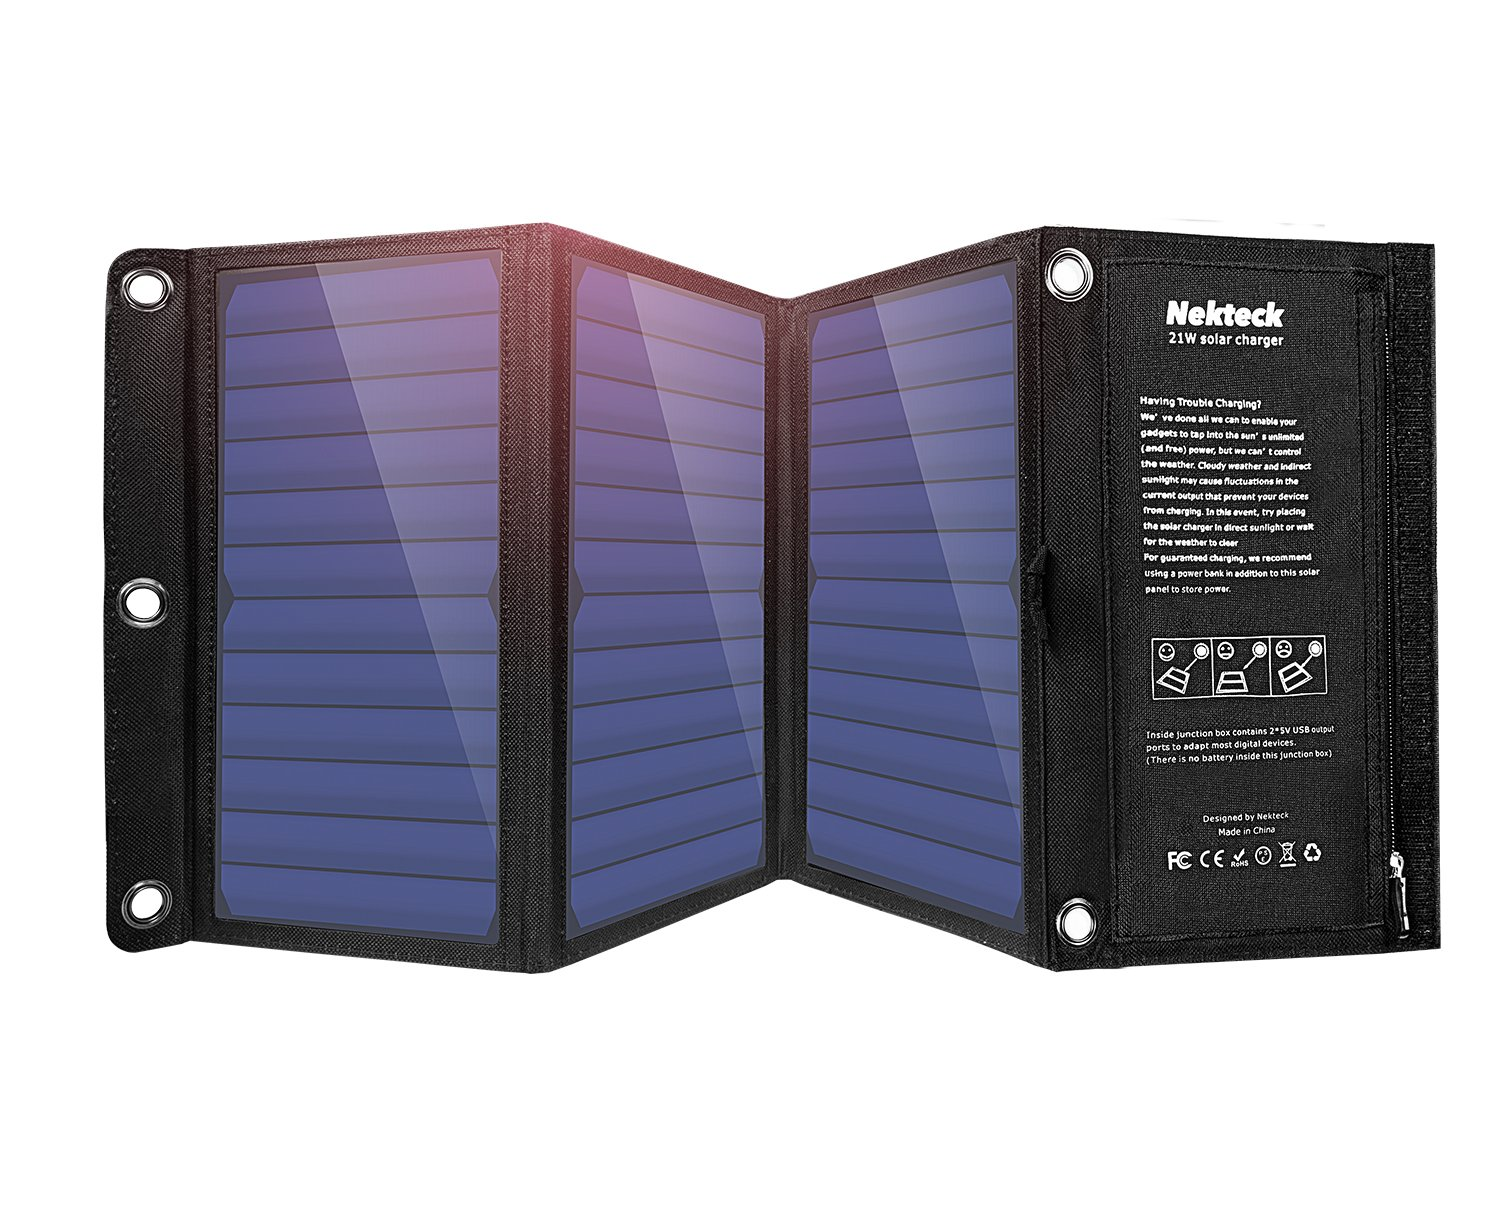 Nekteck 21W Solar Charger with 2-Port USB Charger Build with High efficiency Solar Panel Cell for iPhone 6s / 6 / Plus, SE, iPad, Galaxy S6/S7/ Edge/ Plus, Nexus 5X/6P, any USB devices, and more by Nekteck